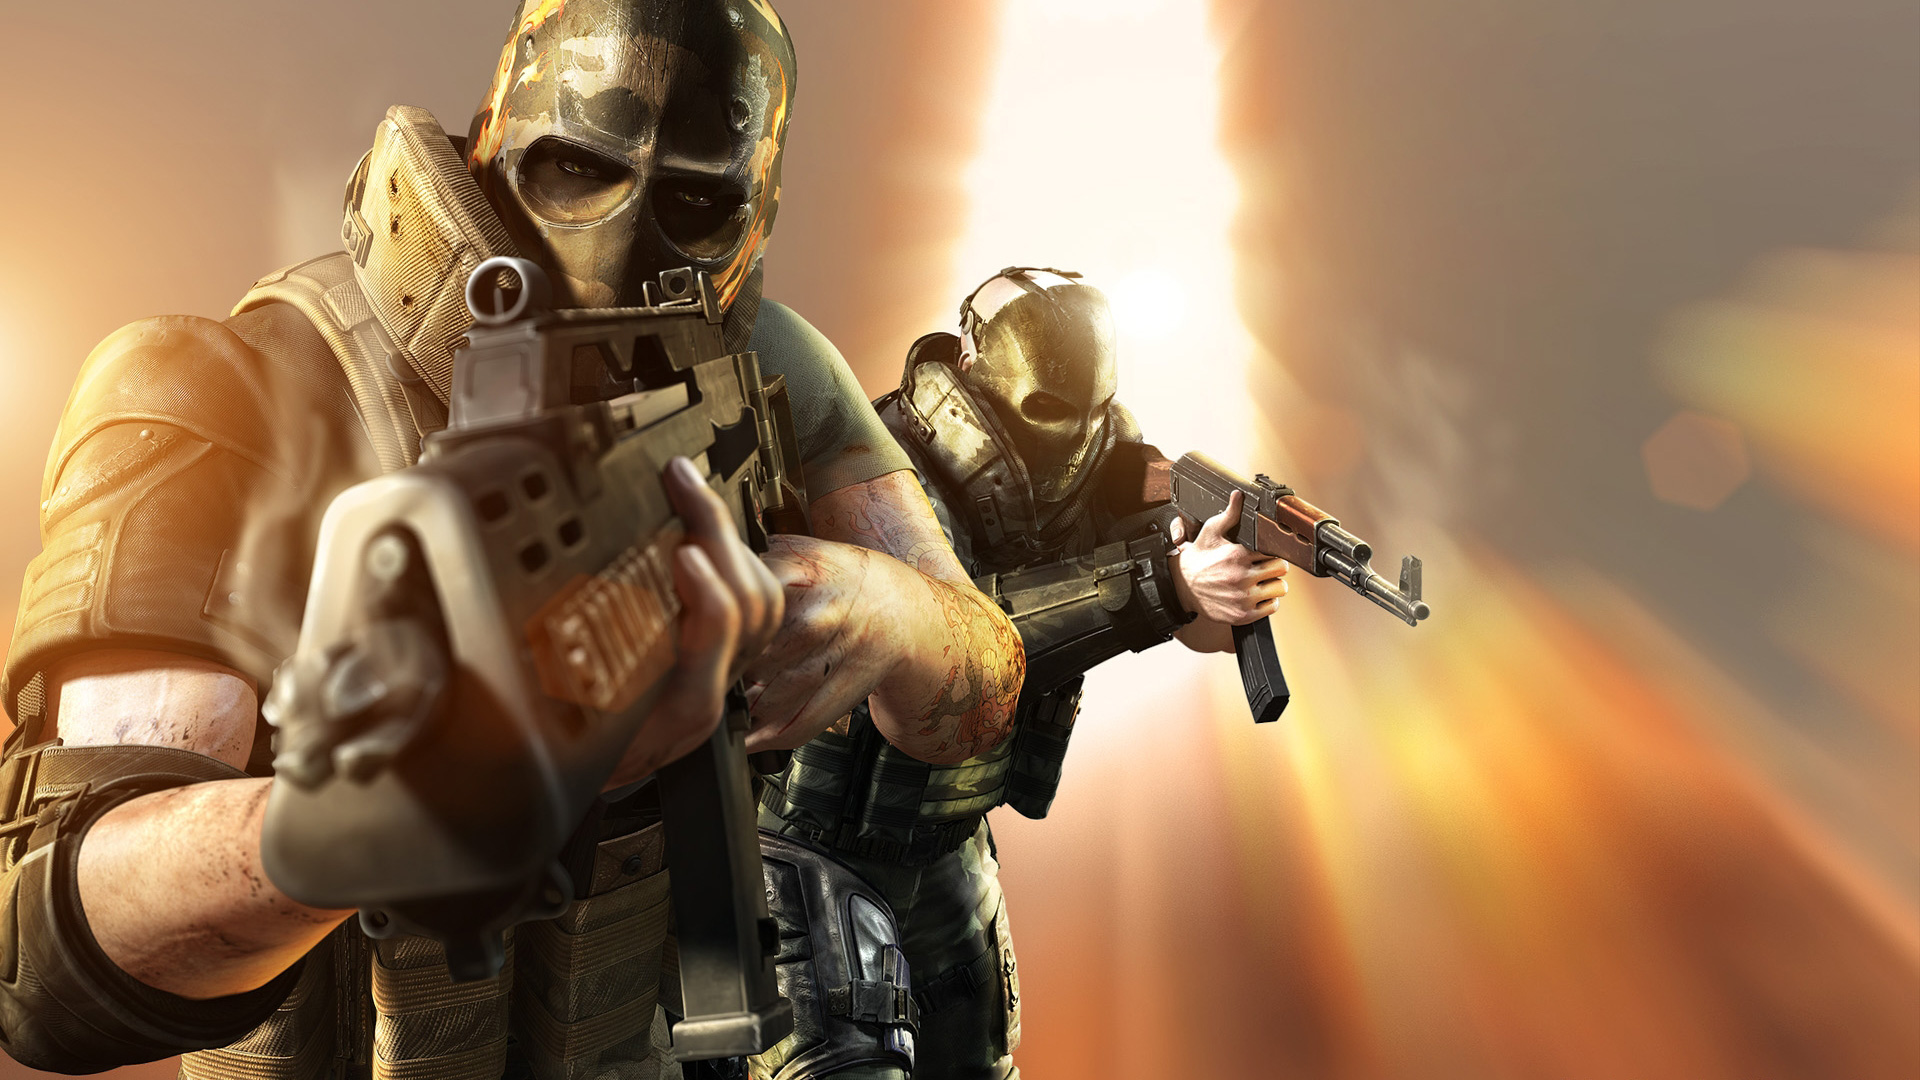 Army of Two: The Devil's Cartel Wallpaper in 1920x1080 |Army Of Two Wallpaper 1920x1080